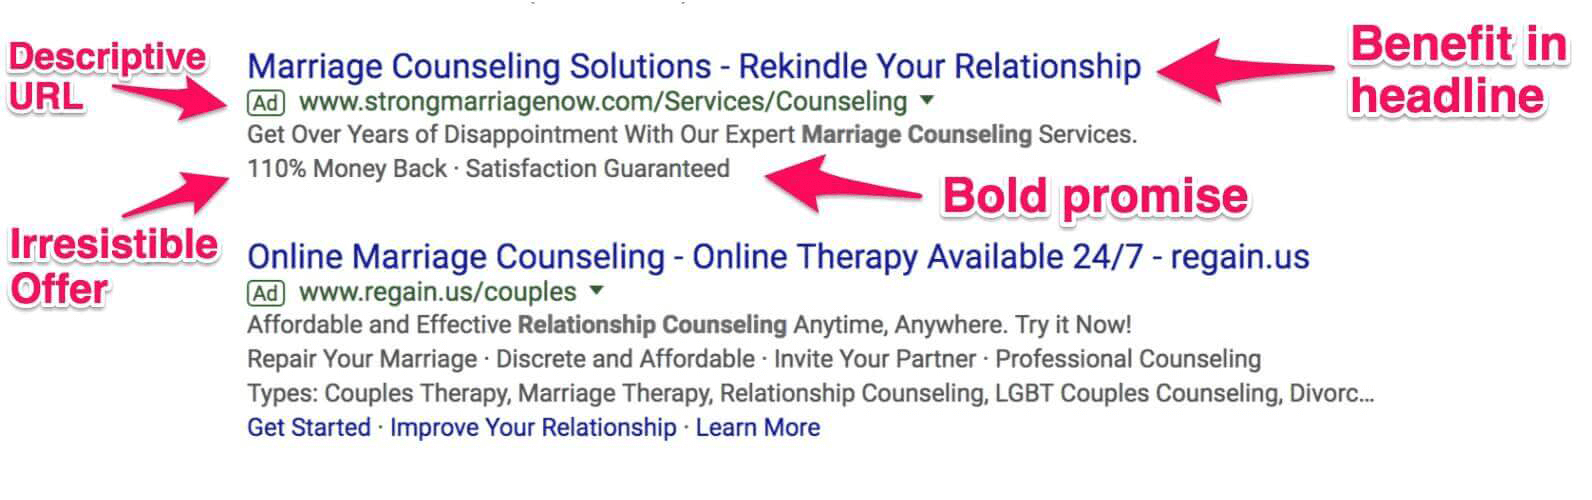 AdWords Text Ad Marriage Counseling